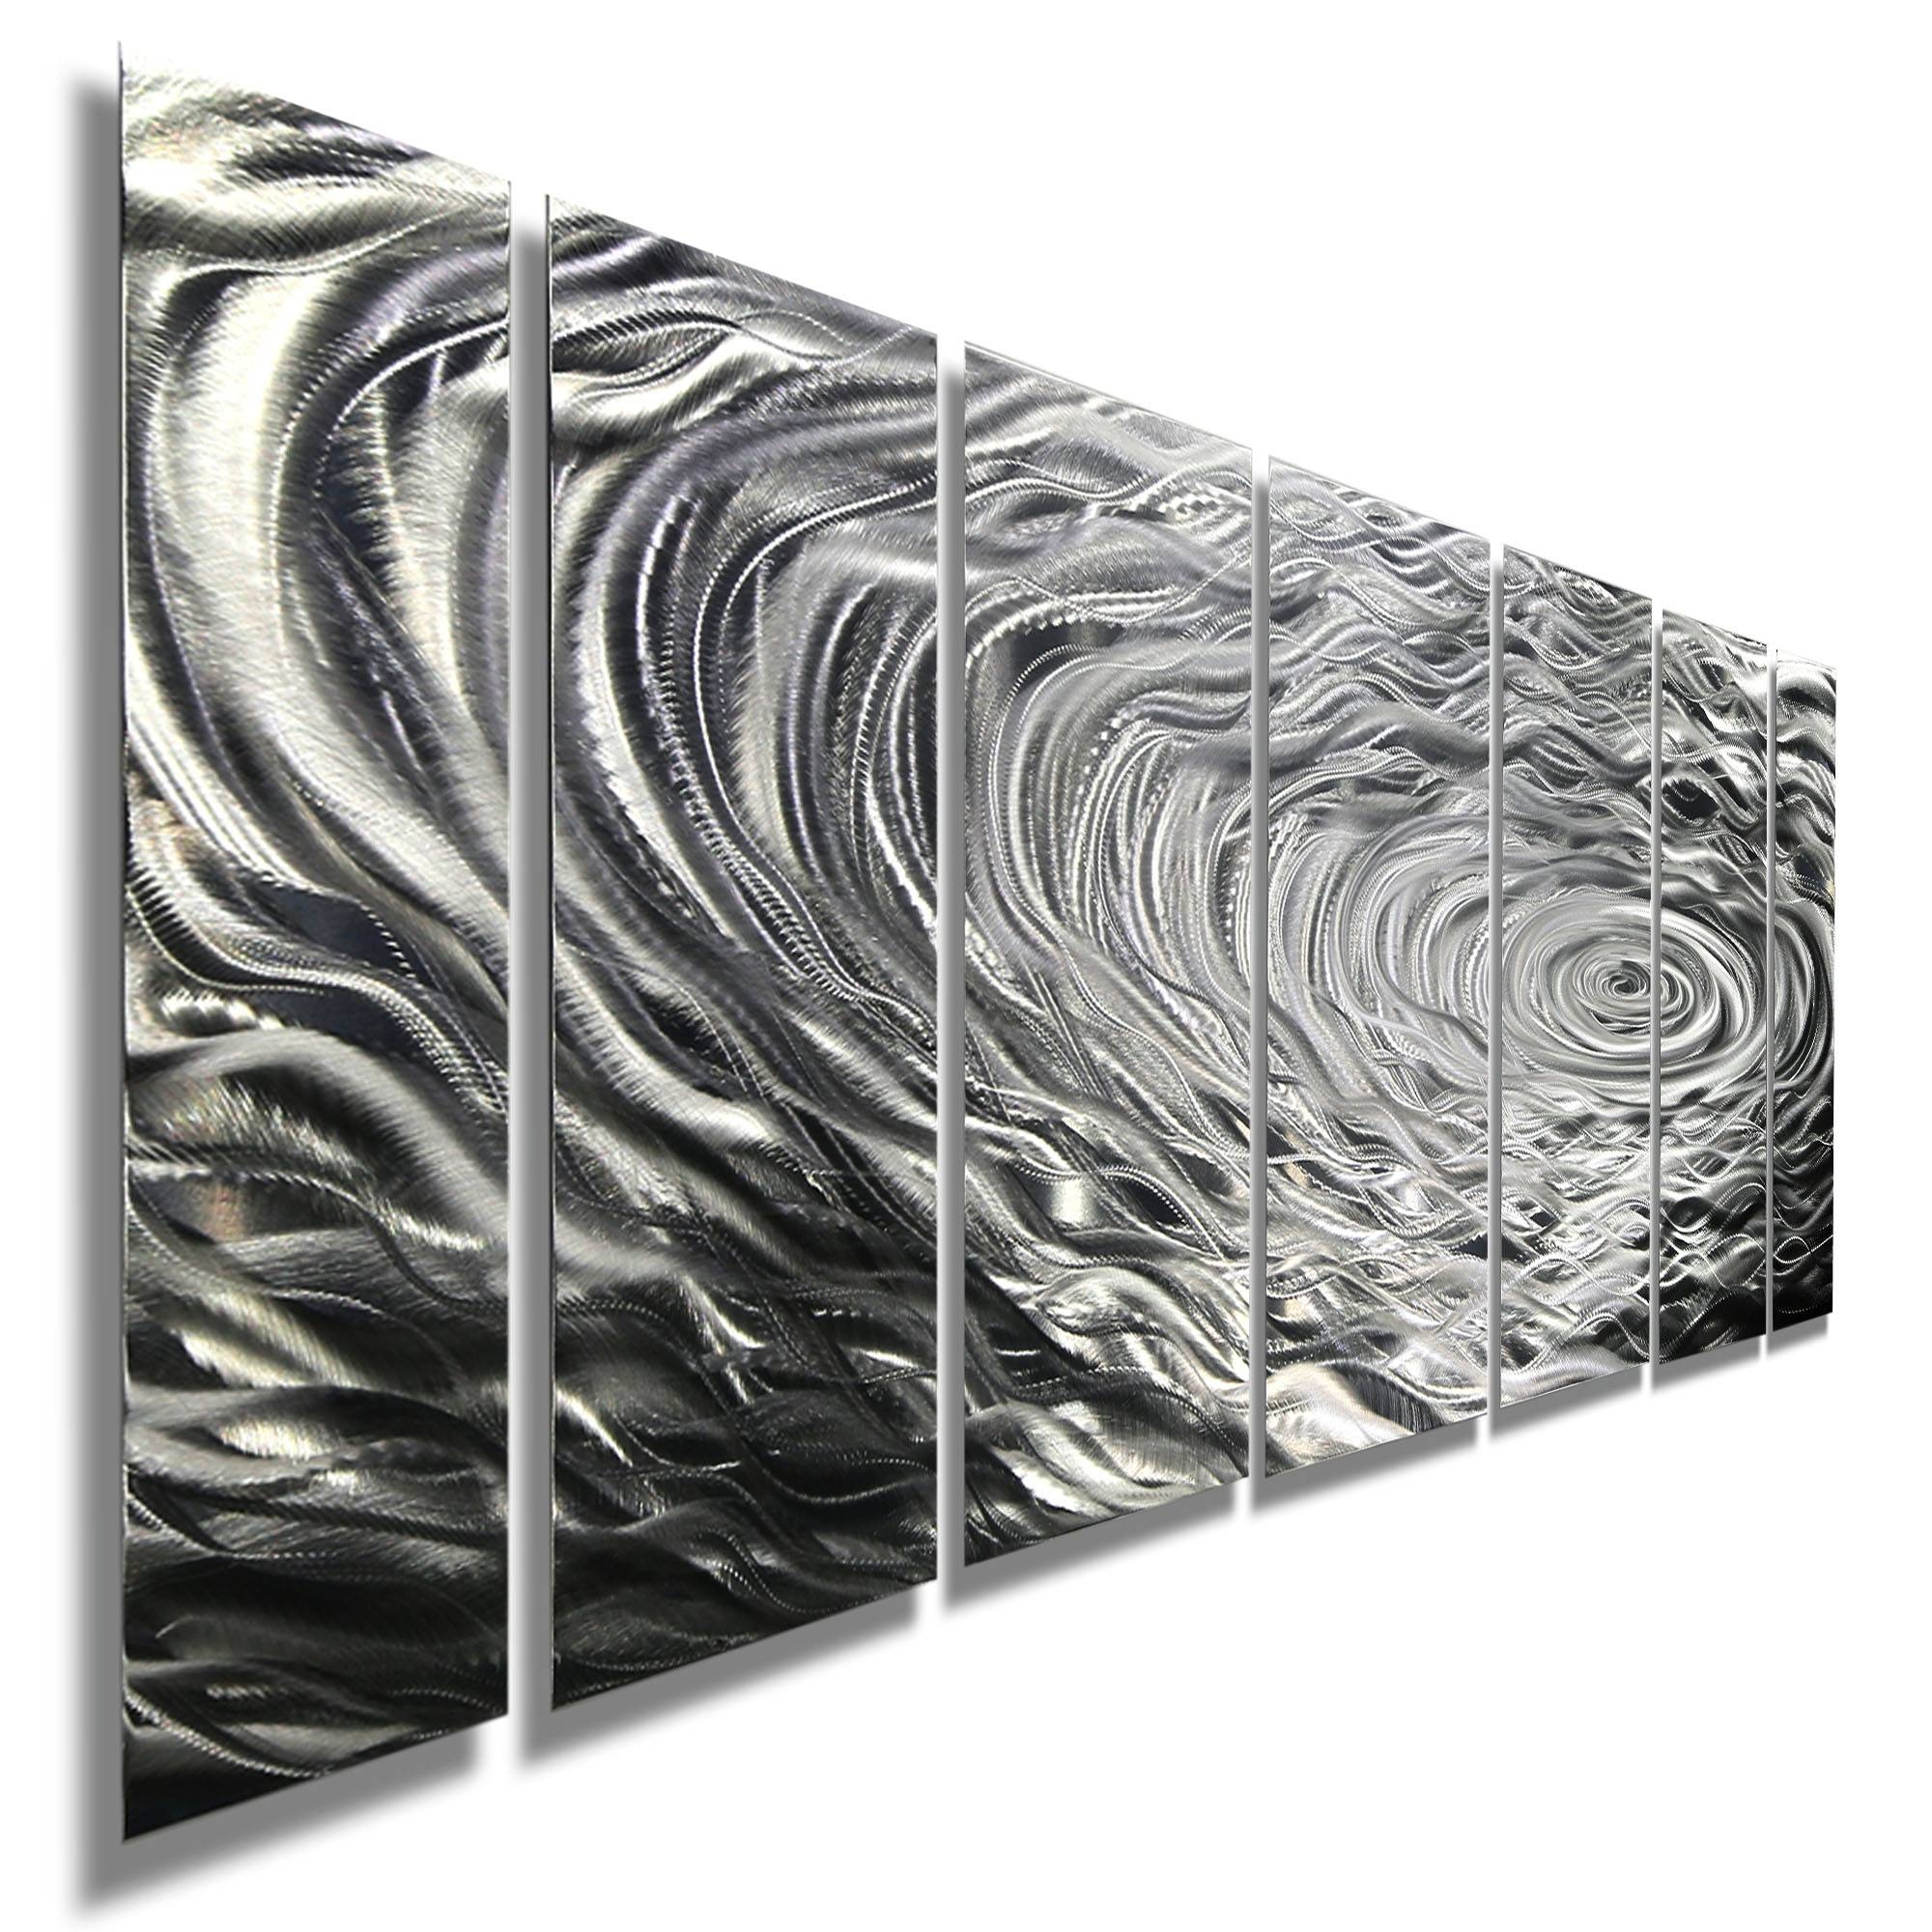 Ripple Effect Xl – Silver Abstract Corporate Metal Wall Art Decor Intended For Most Current Black Silver Wall Art (View 11 of 20)